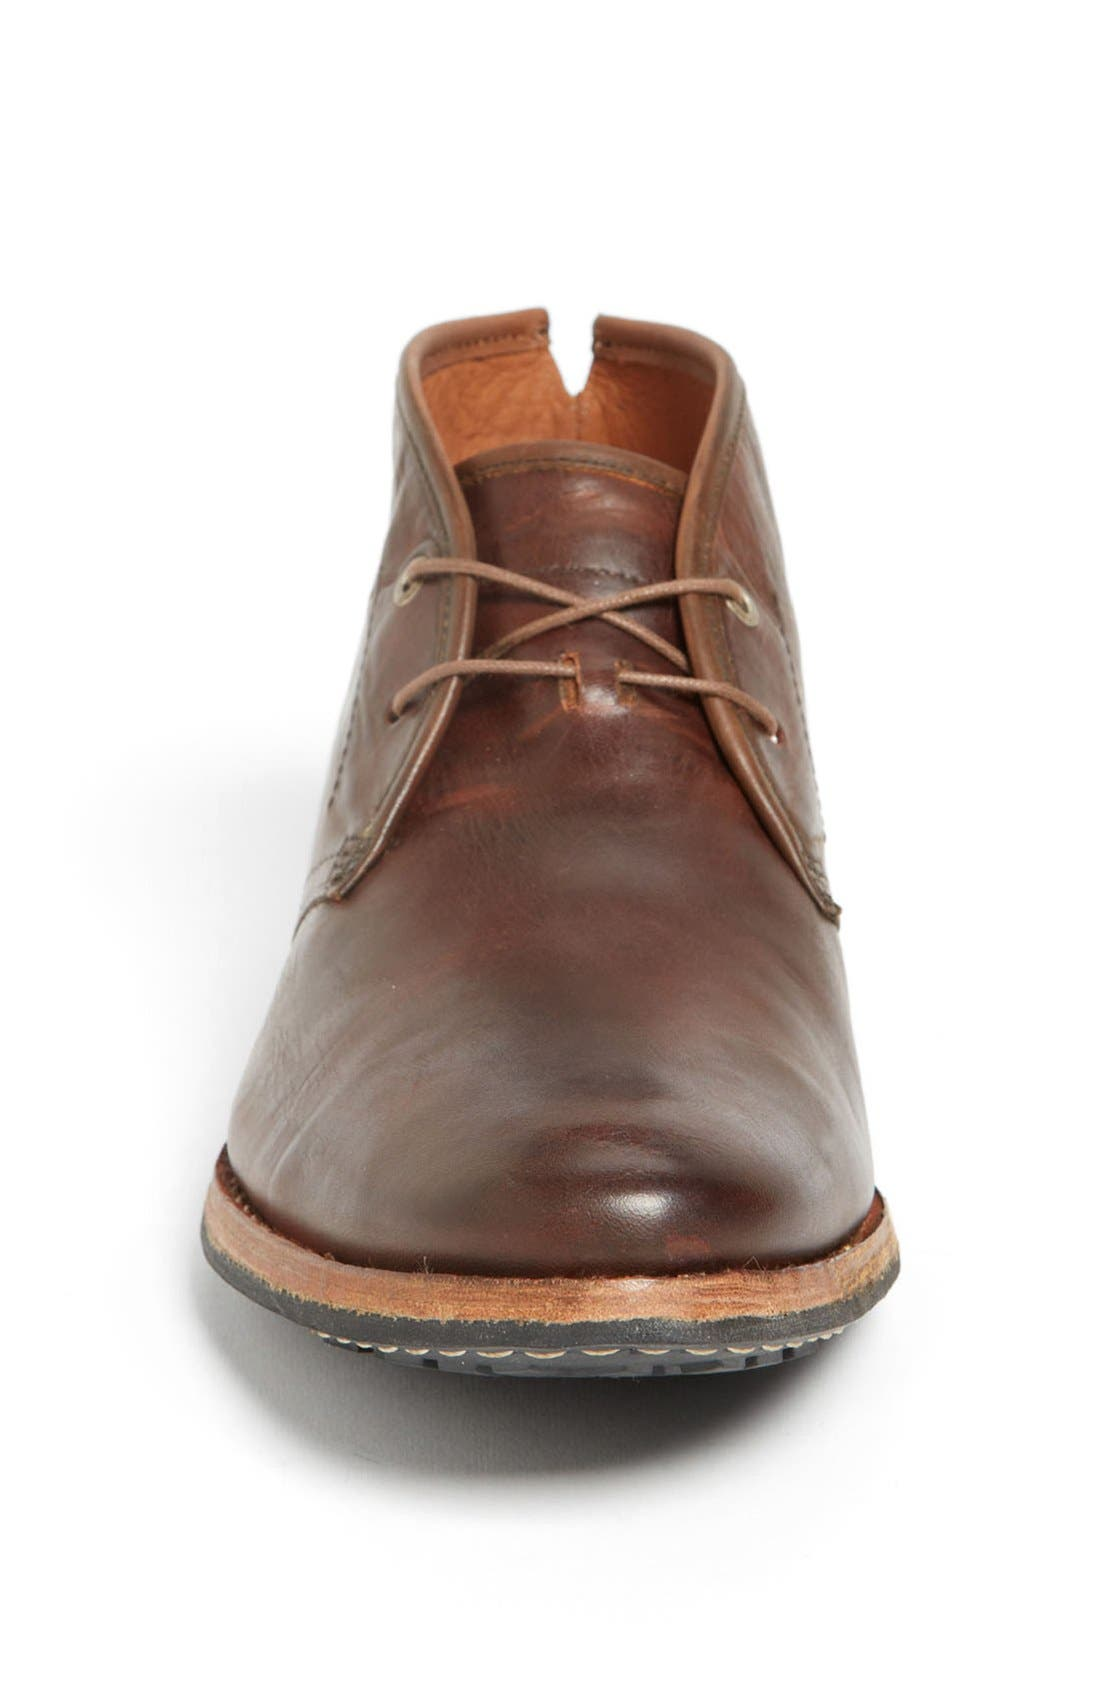 Wodehouse Lost History Chukka Boot,                             Alternate thumbnail 8, color,                             BURNISHED DARK BROWN LEATHER